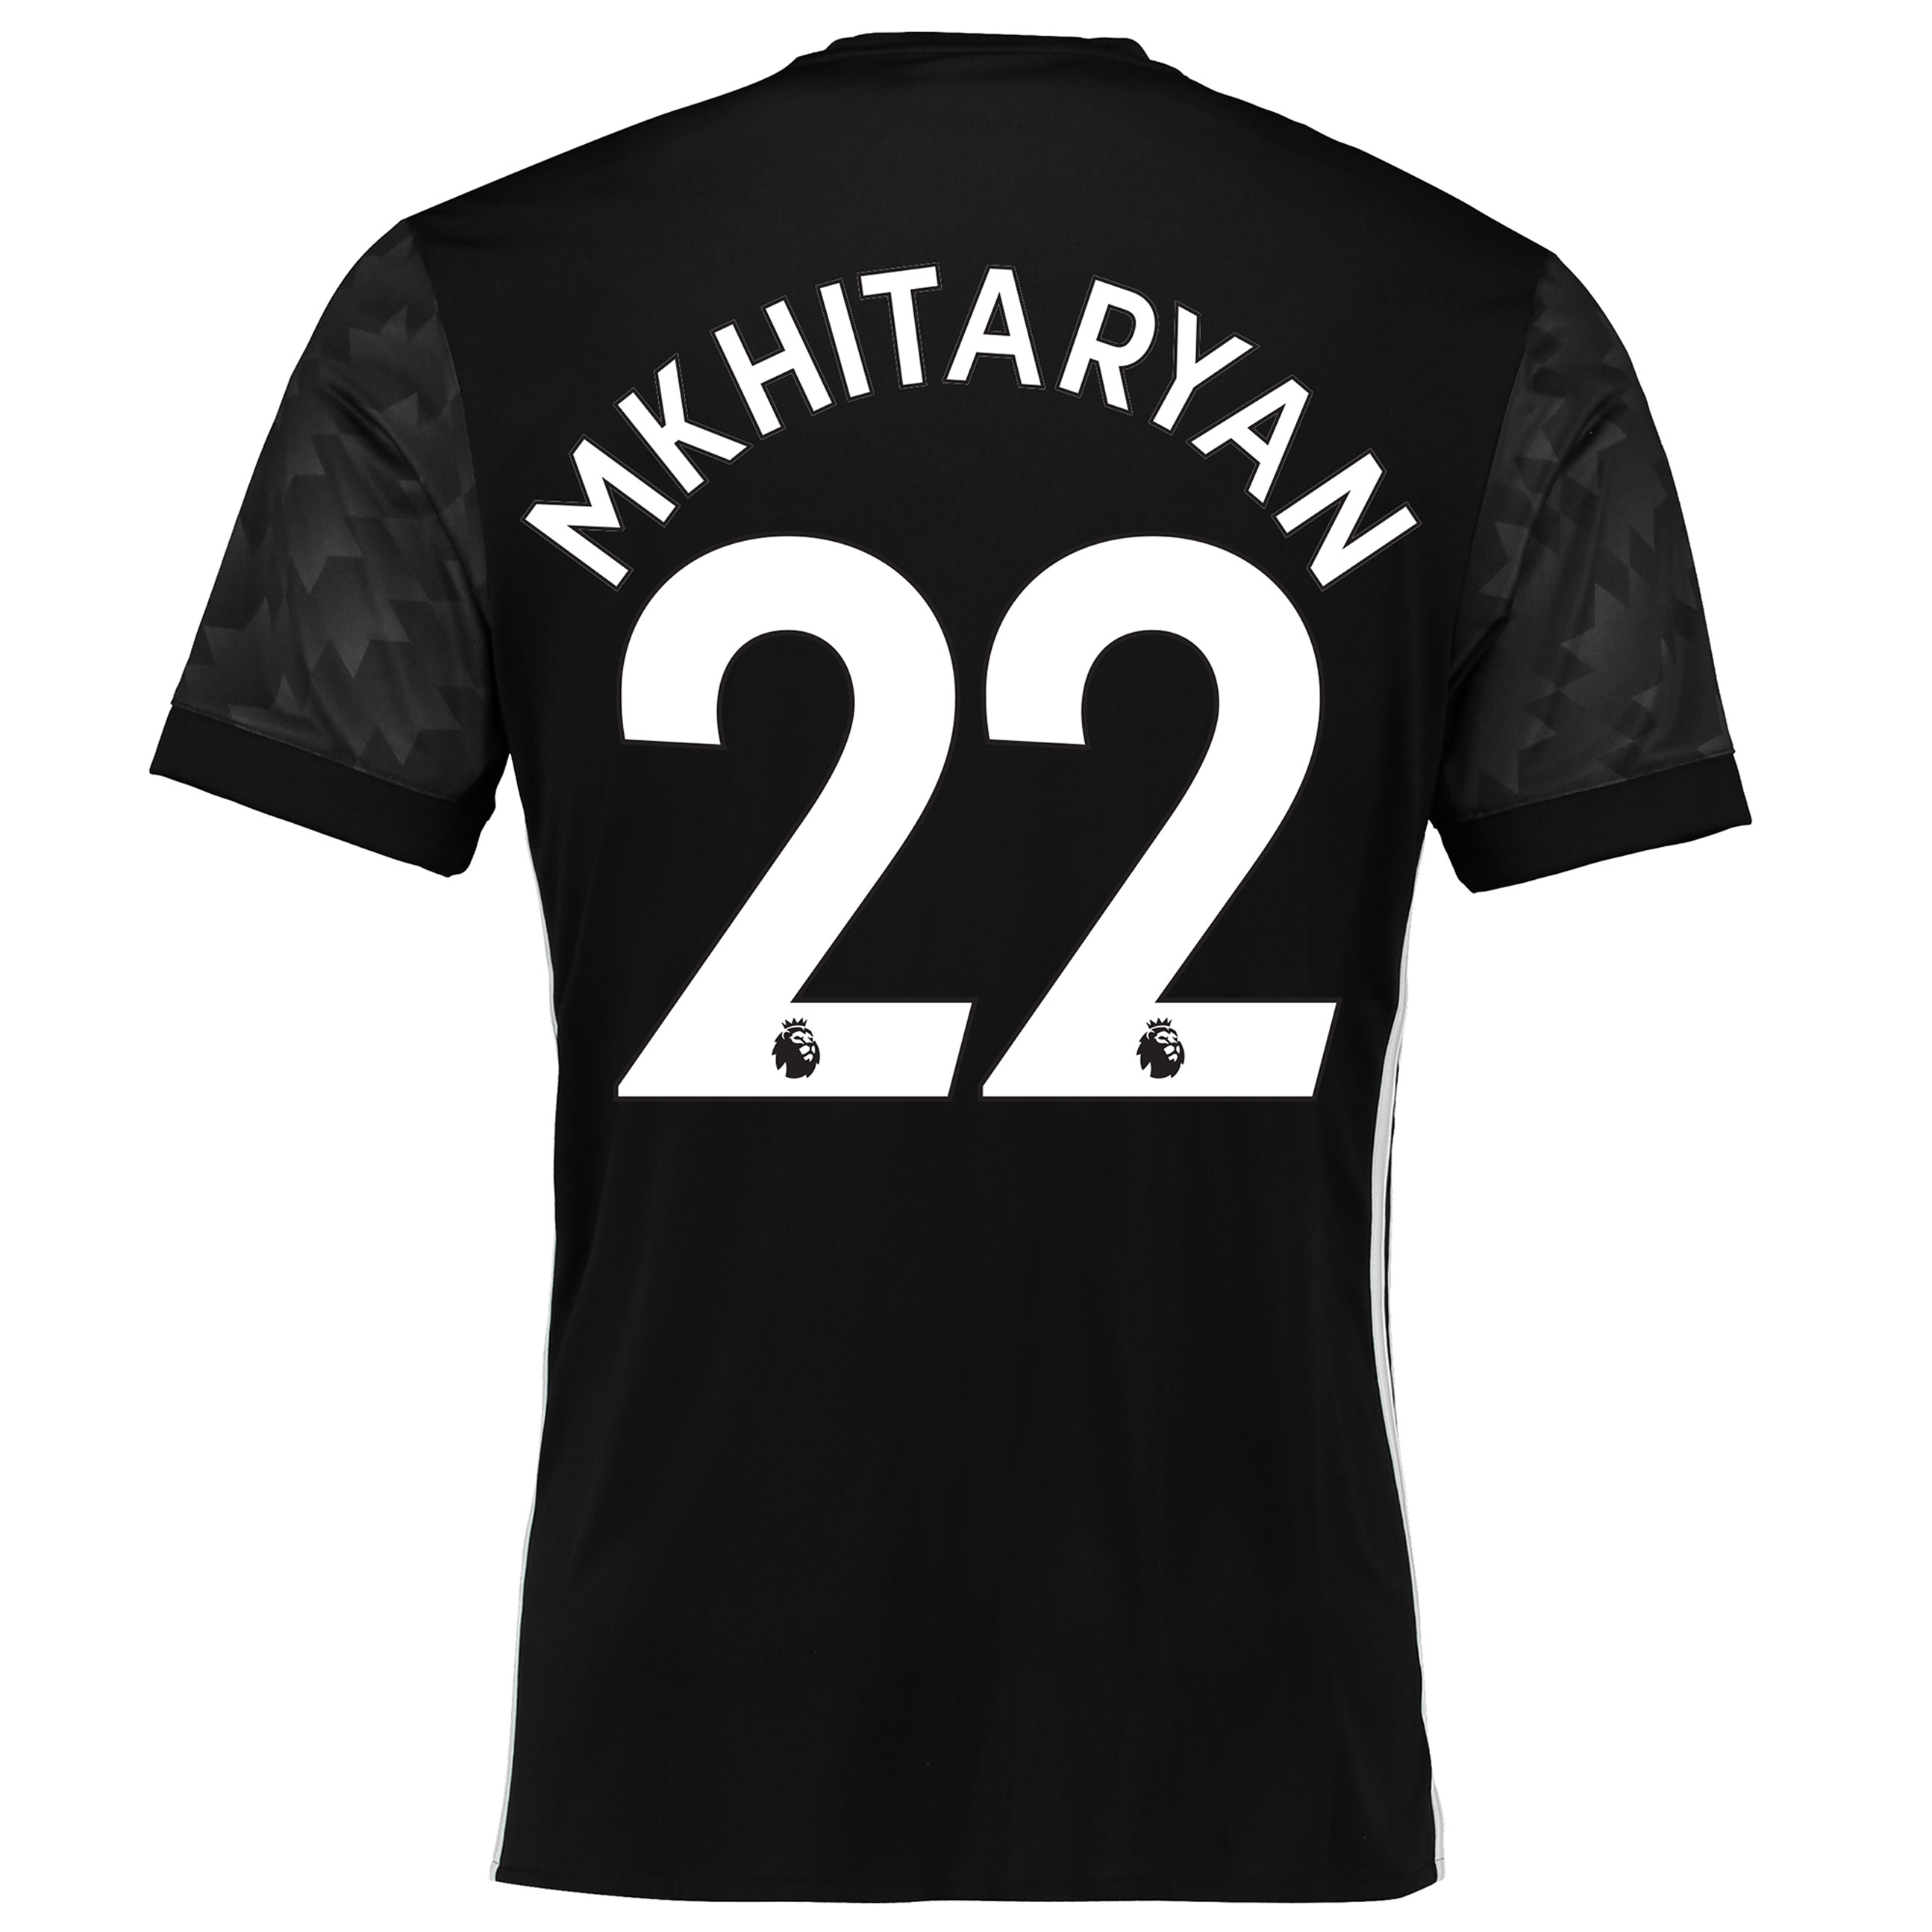 Manchester United Away Shirt 2017-18 with Mkhitaryan 22 printing